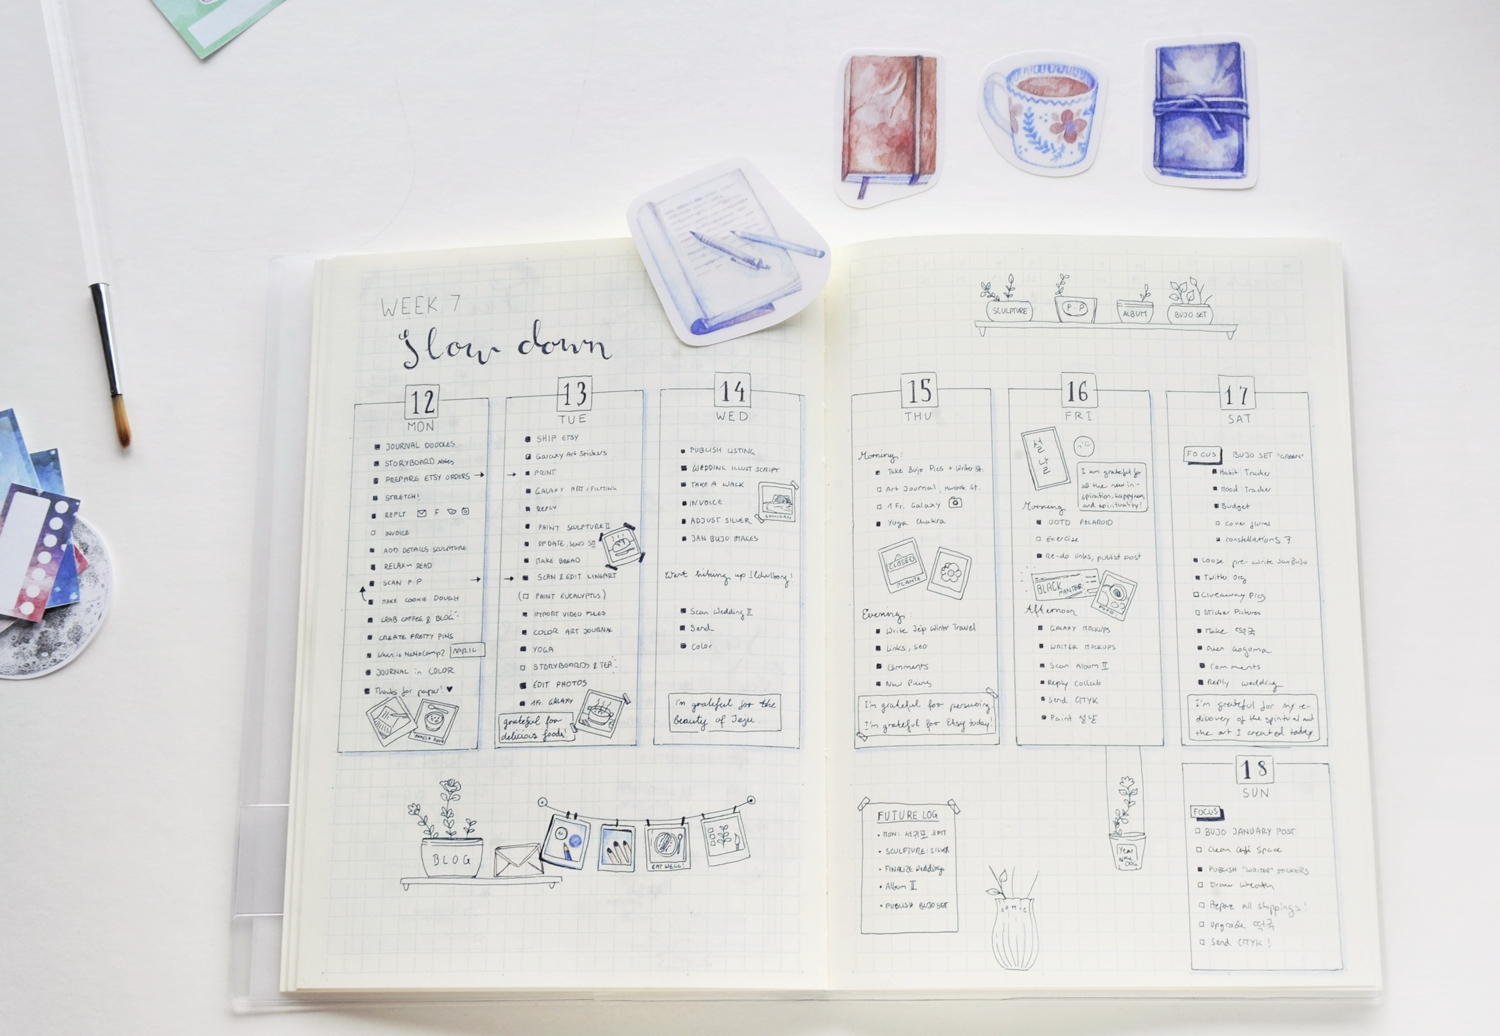 """My Weekly """"Self-Care"""" Bullet Journal Layout  Above you can see the result of that one week during which I focused on getting back on track.  That meant:   Detailed to-do lists that I could breeze through without thinking too hard or getting overwhelmed.  Simple vertical columns to keep the pages clean & minimalist despite the busier little details.  Little Polaroid frame doodles - about two per day for memories & gratitude logs.  Boxes with enough space for a single sentence at the end of each day - again, as a gratitude log and diary.  Flower pots for different projects that I wanted to pursue but that didn't have a concrete deadline. Inspired by my  Pomodoro Technique in my Bullet Journal  post, I added flowers for each finished step on those projects.  Self-care activities in the form of four Polaroid doodles.  """"SLOW DOWN"""" calligraphy at the very top"""